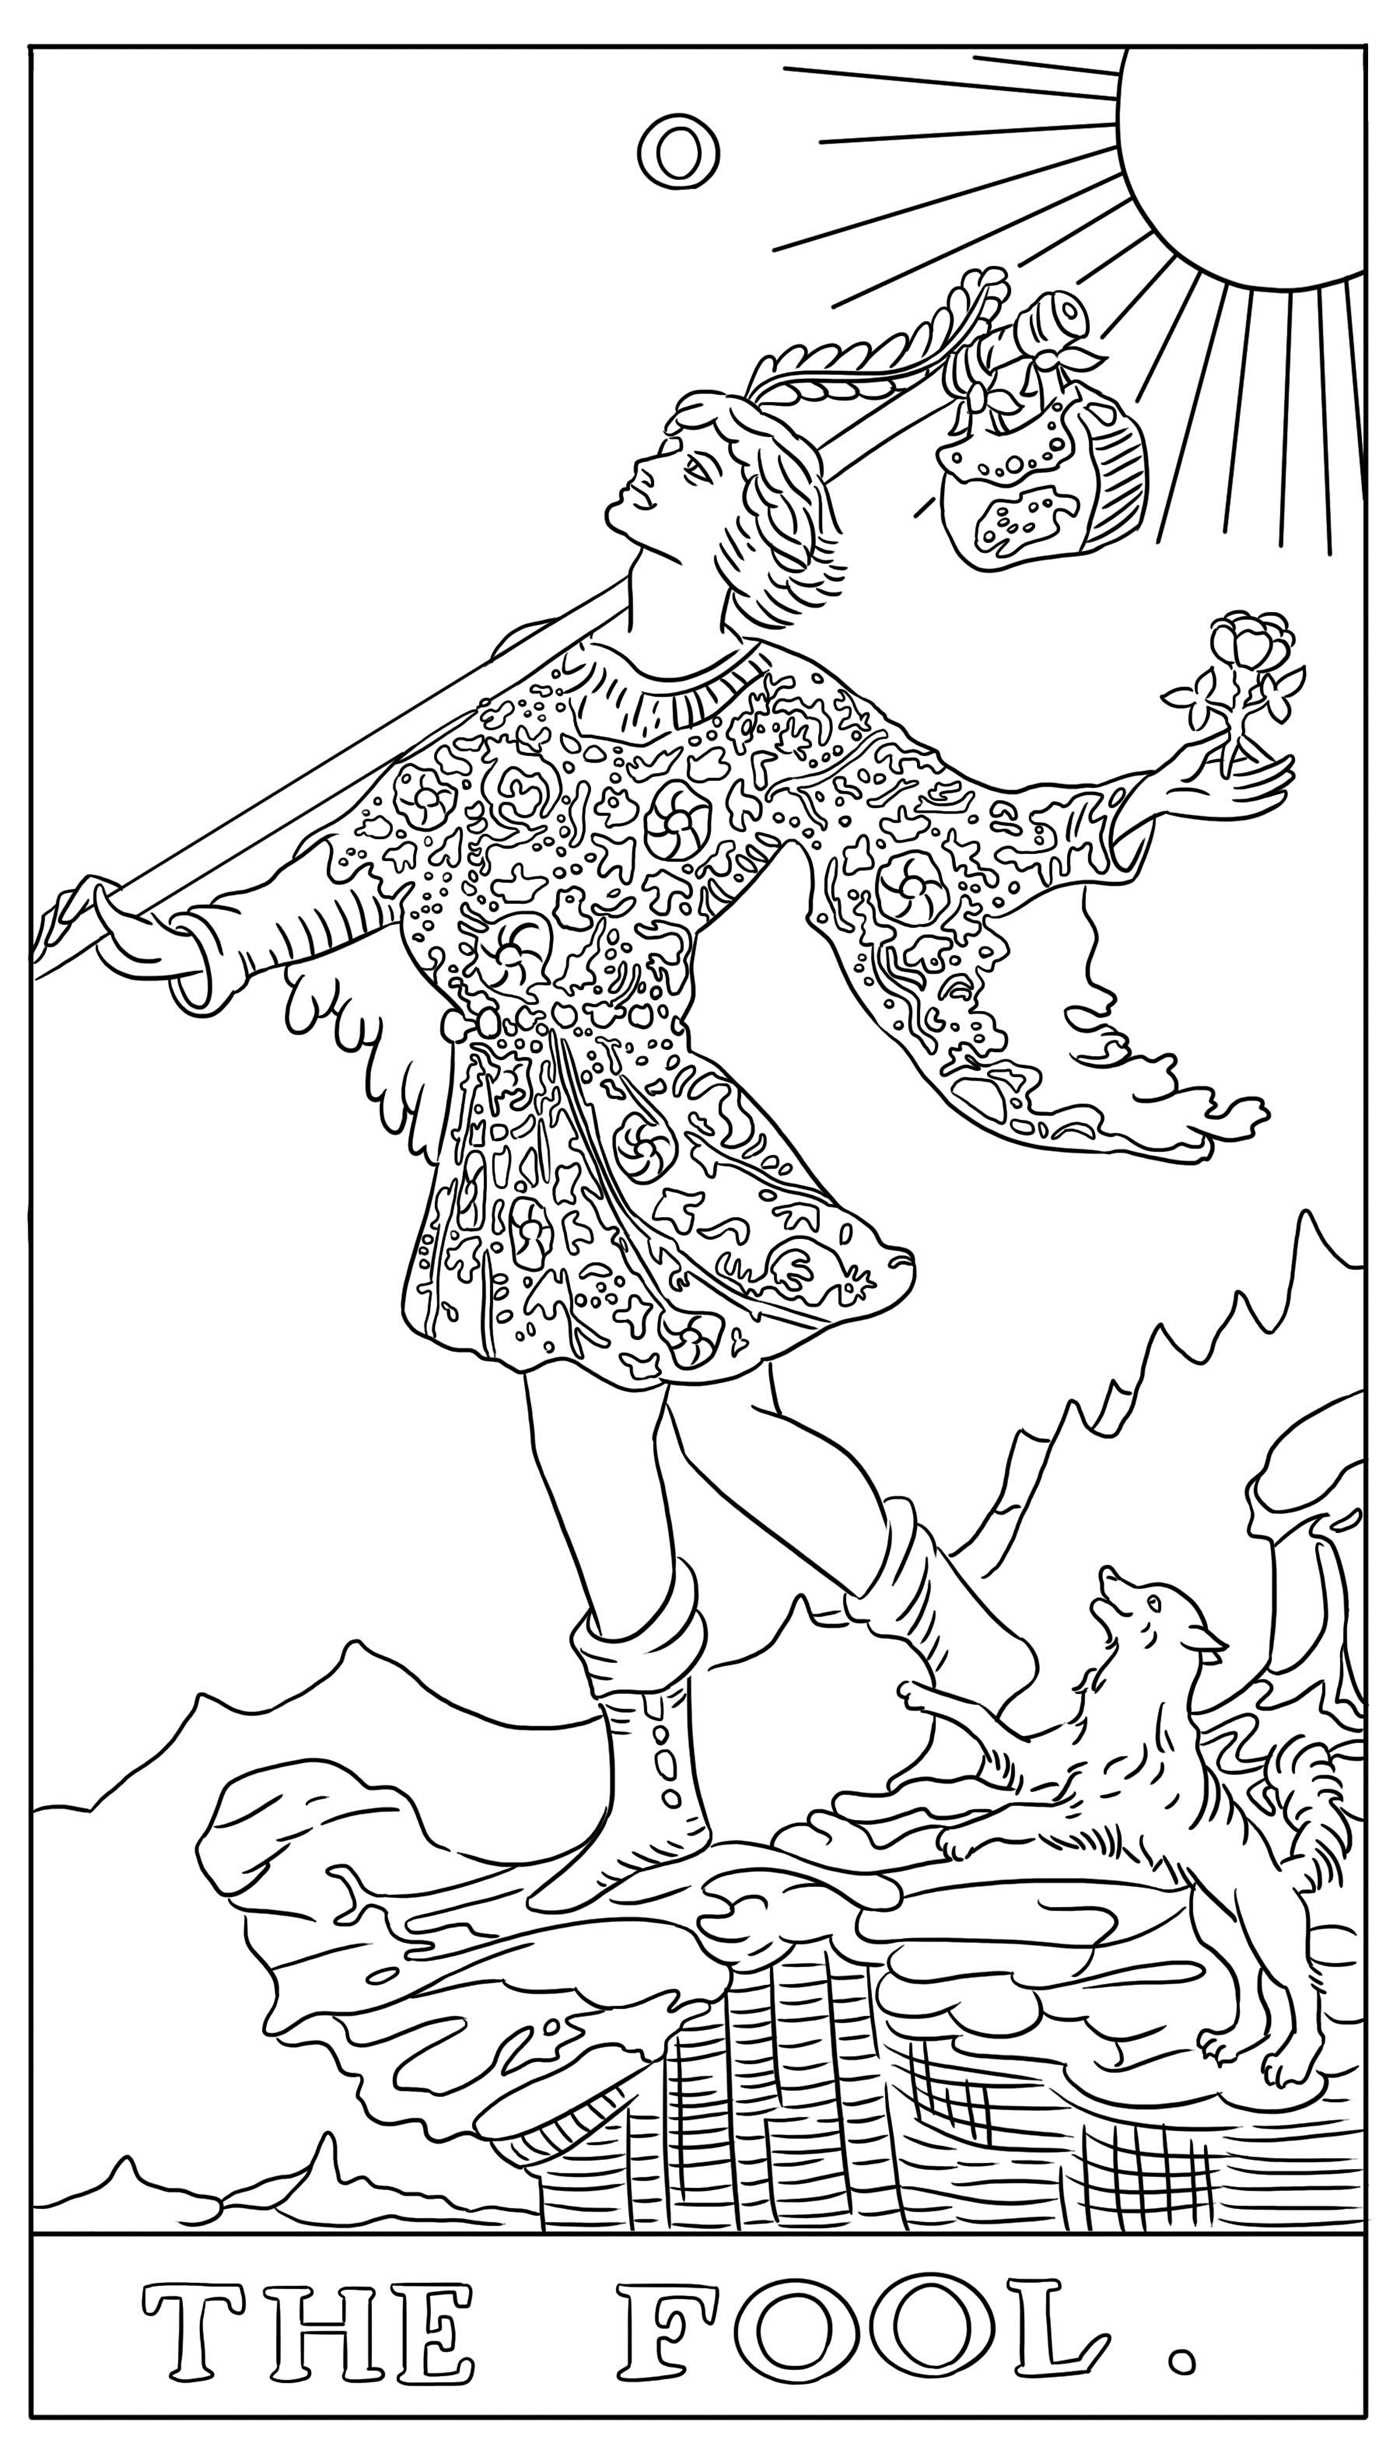 Tarot card coloring pages murderthestout Coloring book note 8